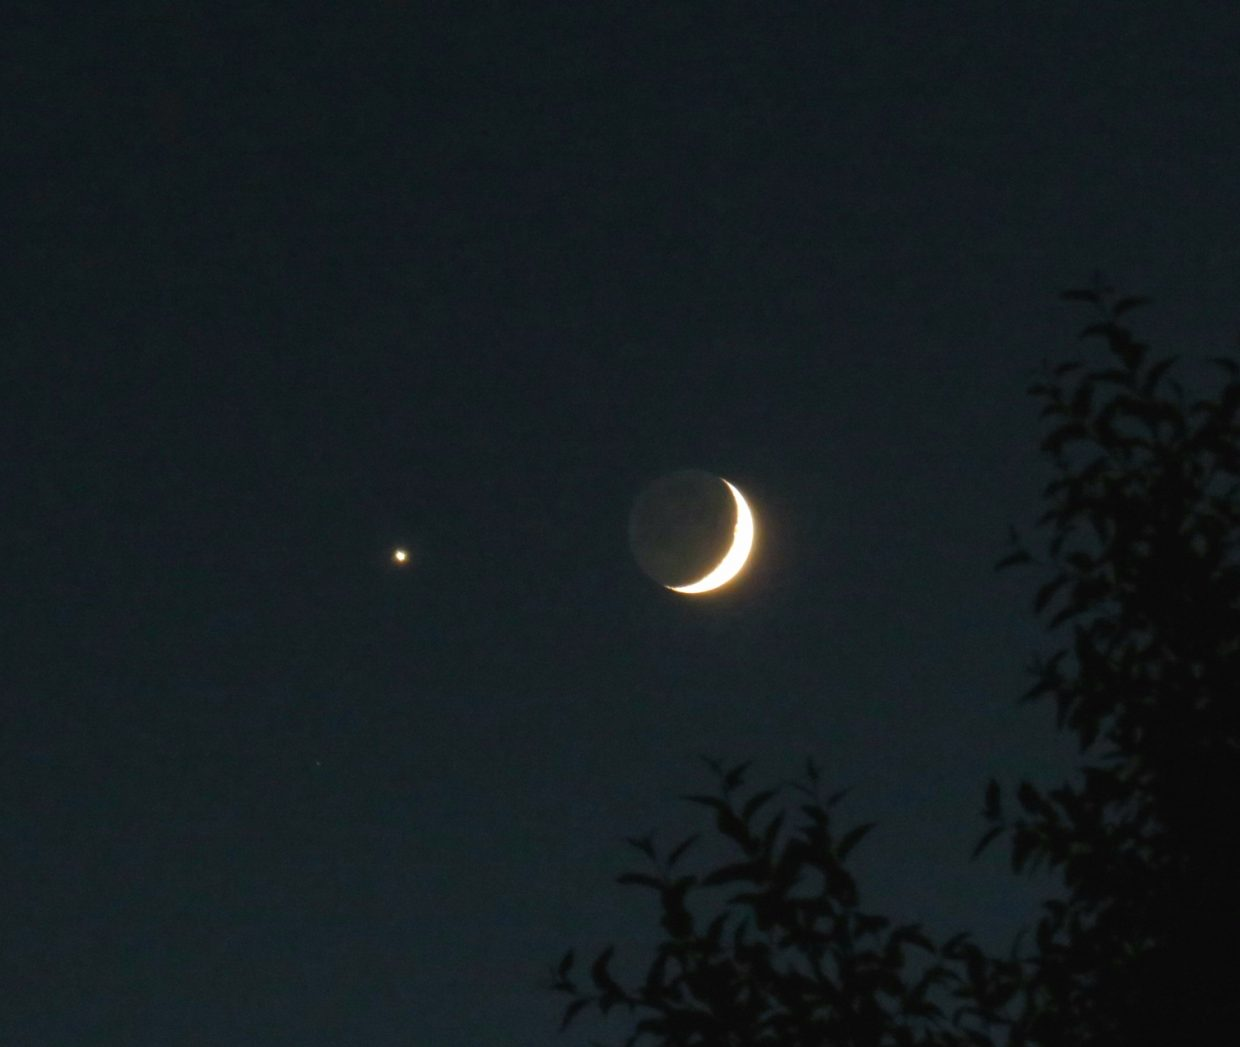 Venus appears in the sky with the moon Sunday on Emerald Mountain.